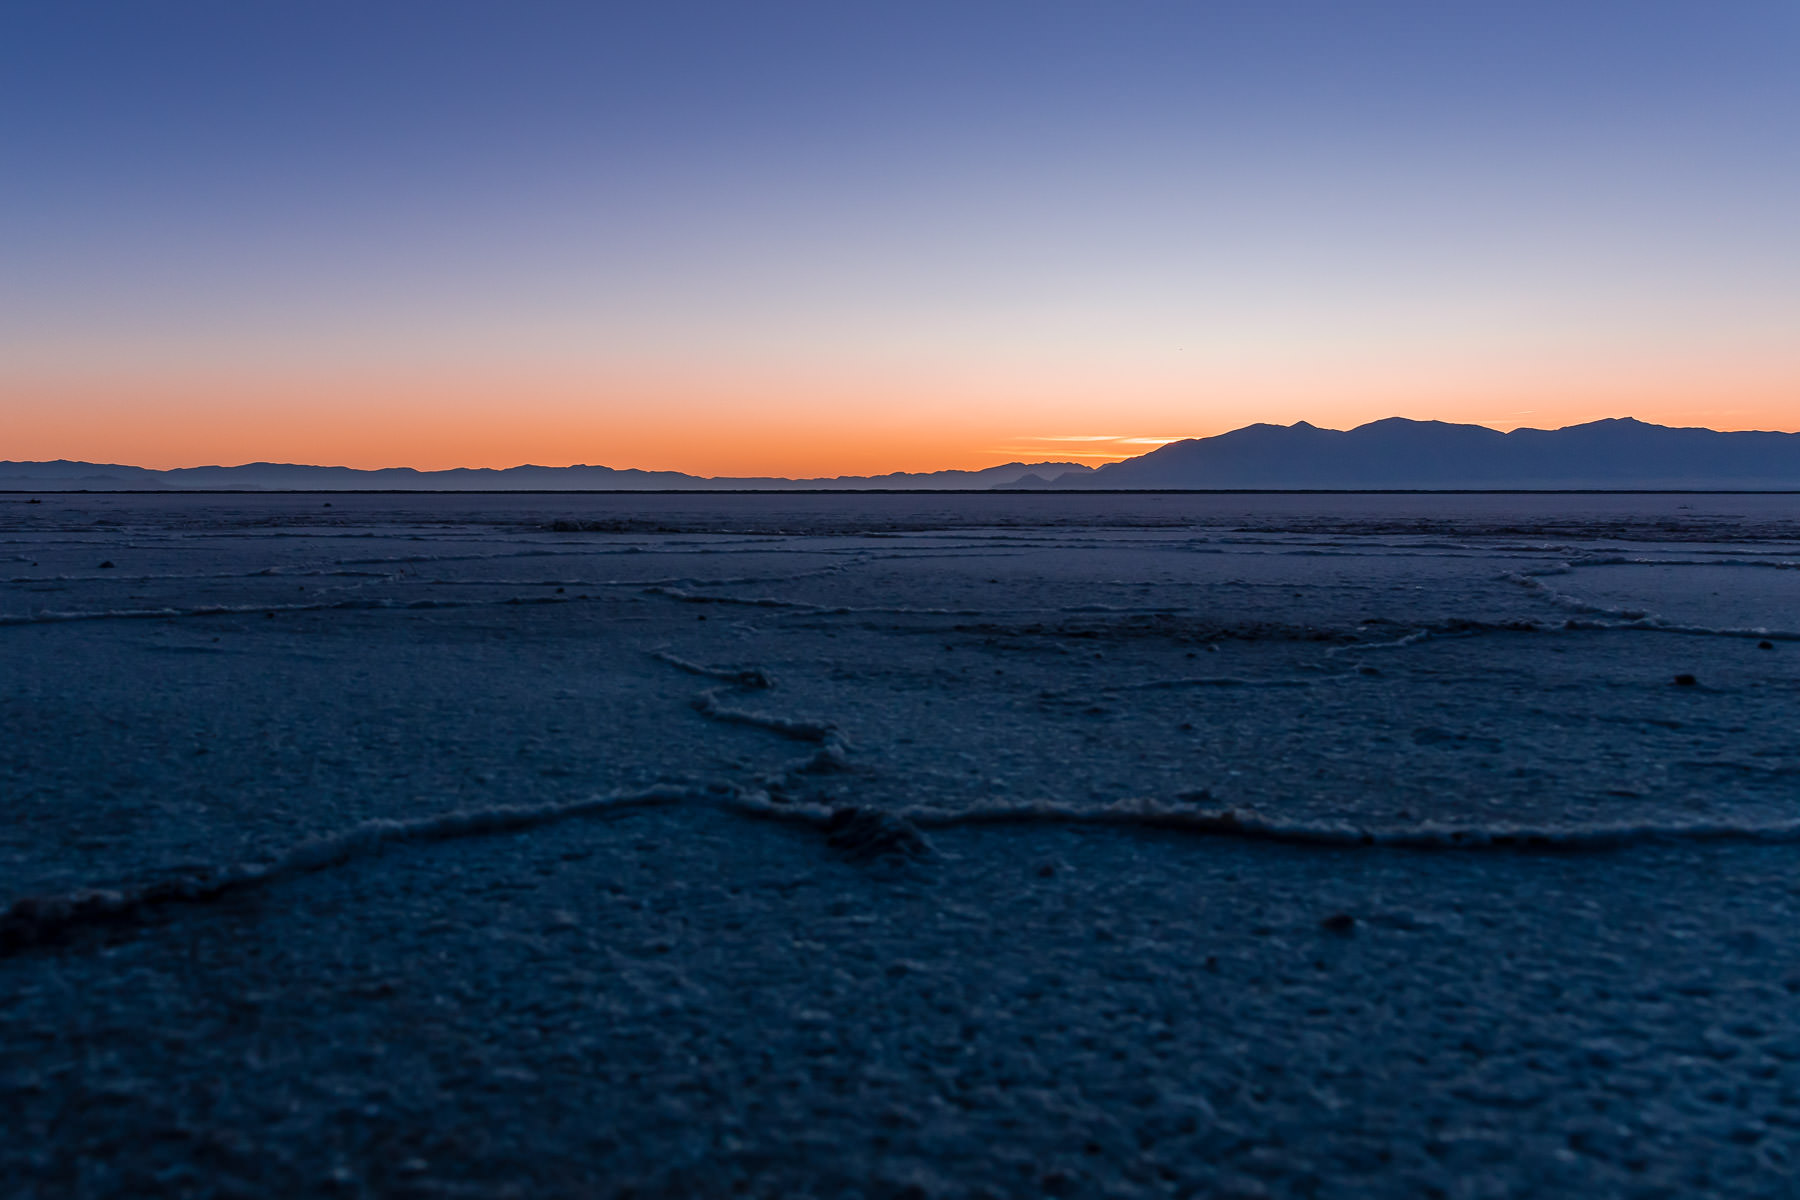 Salt flats along the shore of Utah's Great Salt Lake near Stansbury Island stretch towards the rising sun.